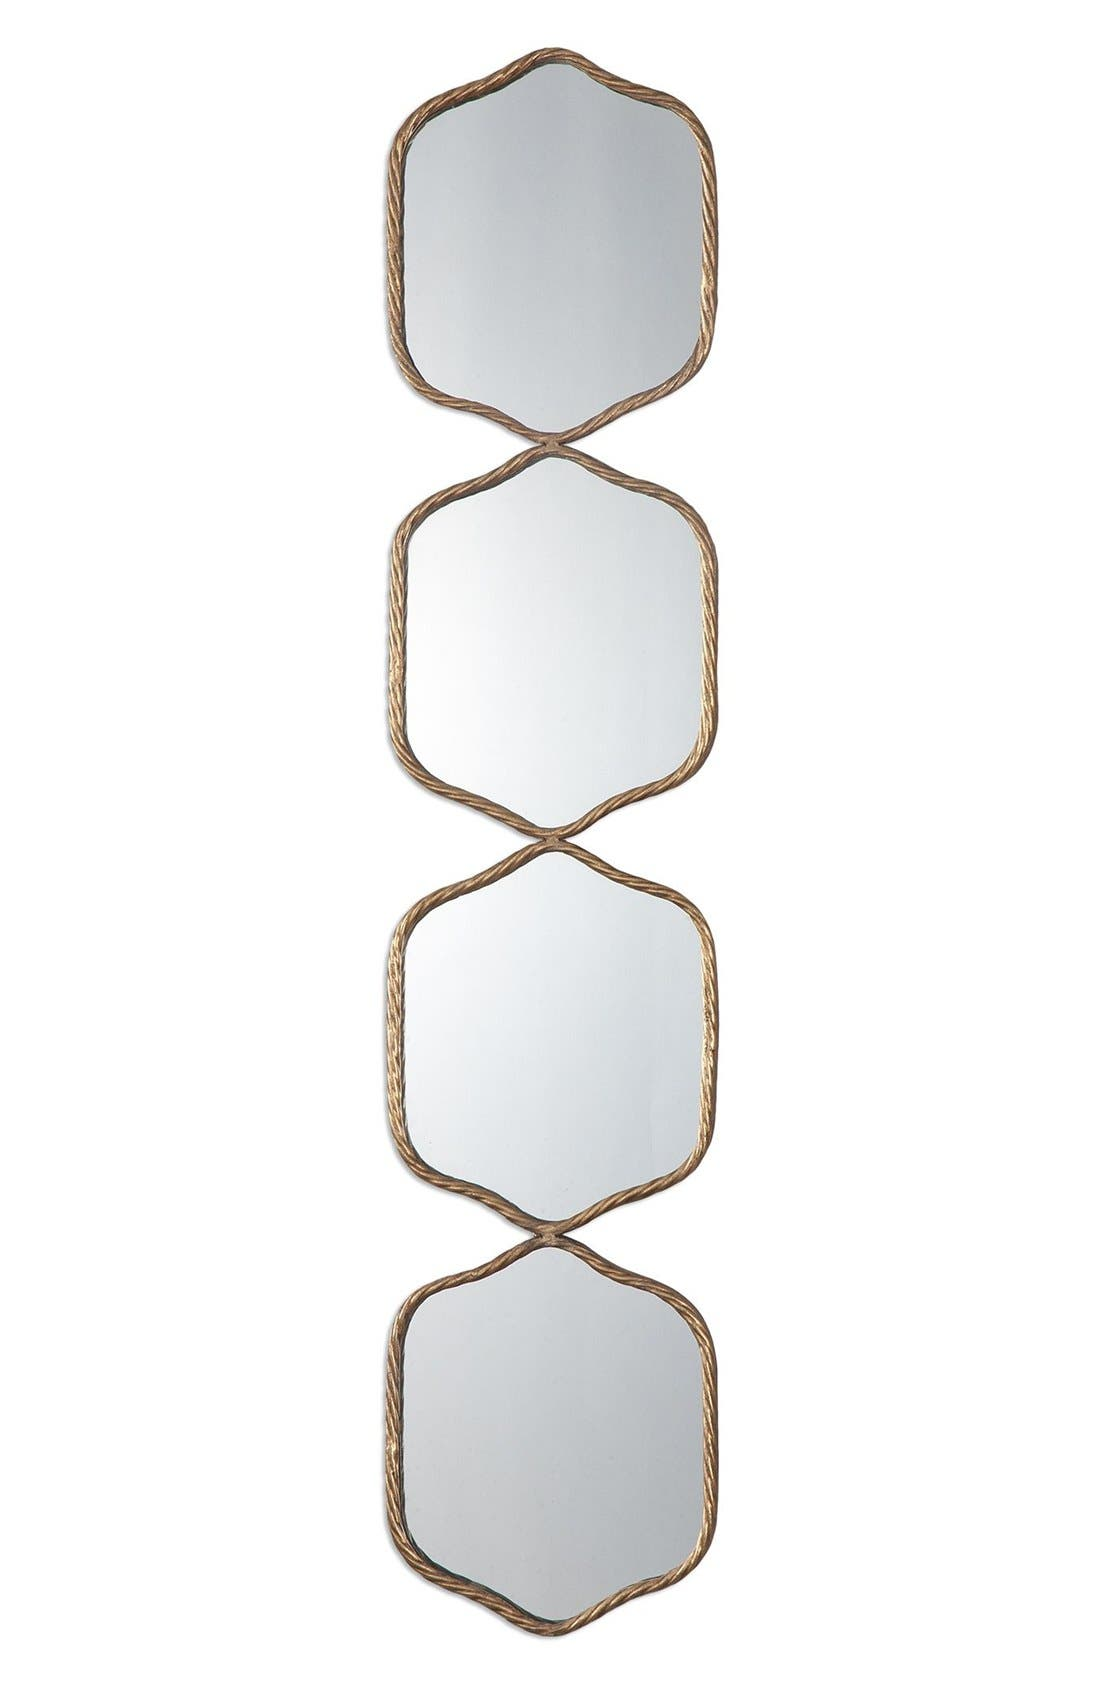 Alternate Image 1 Selected - Uttermost 'Myriam' Wall Mirror